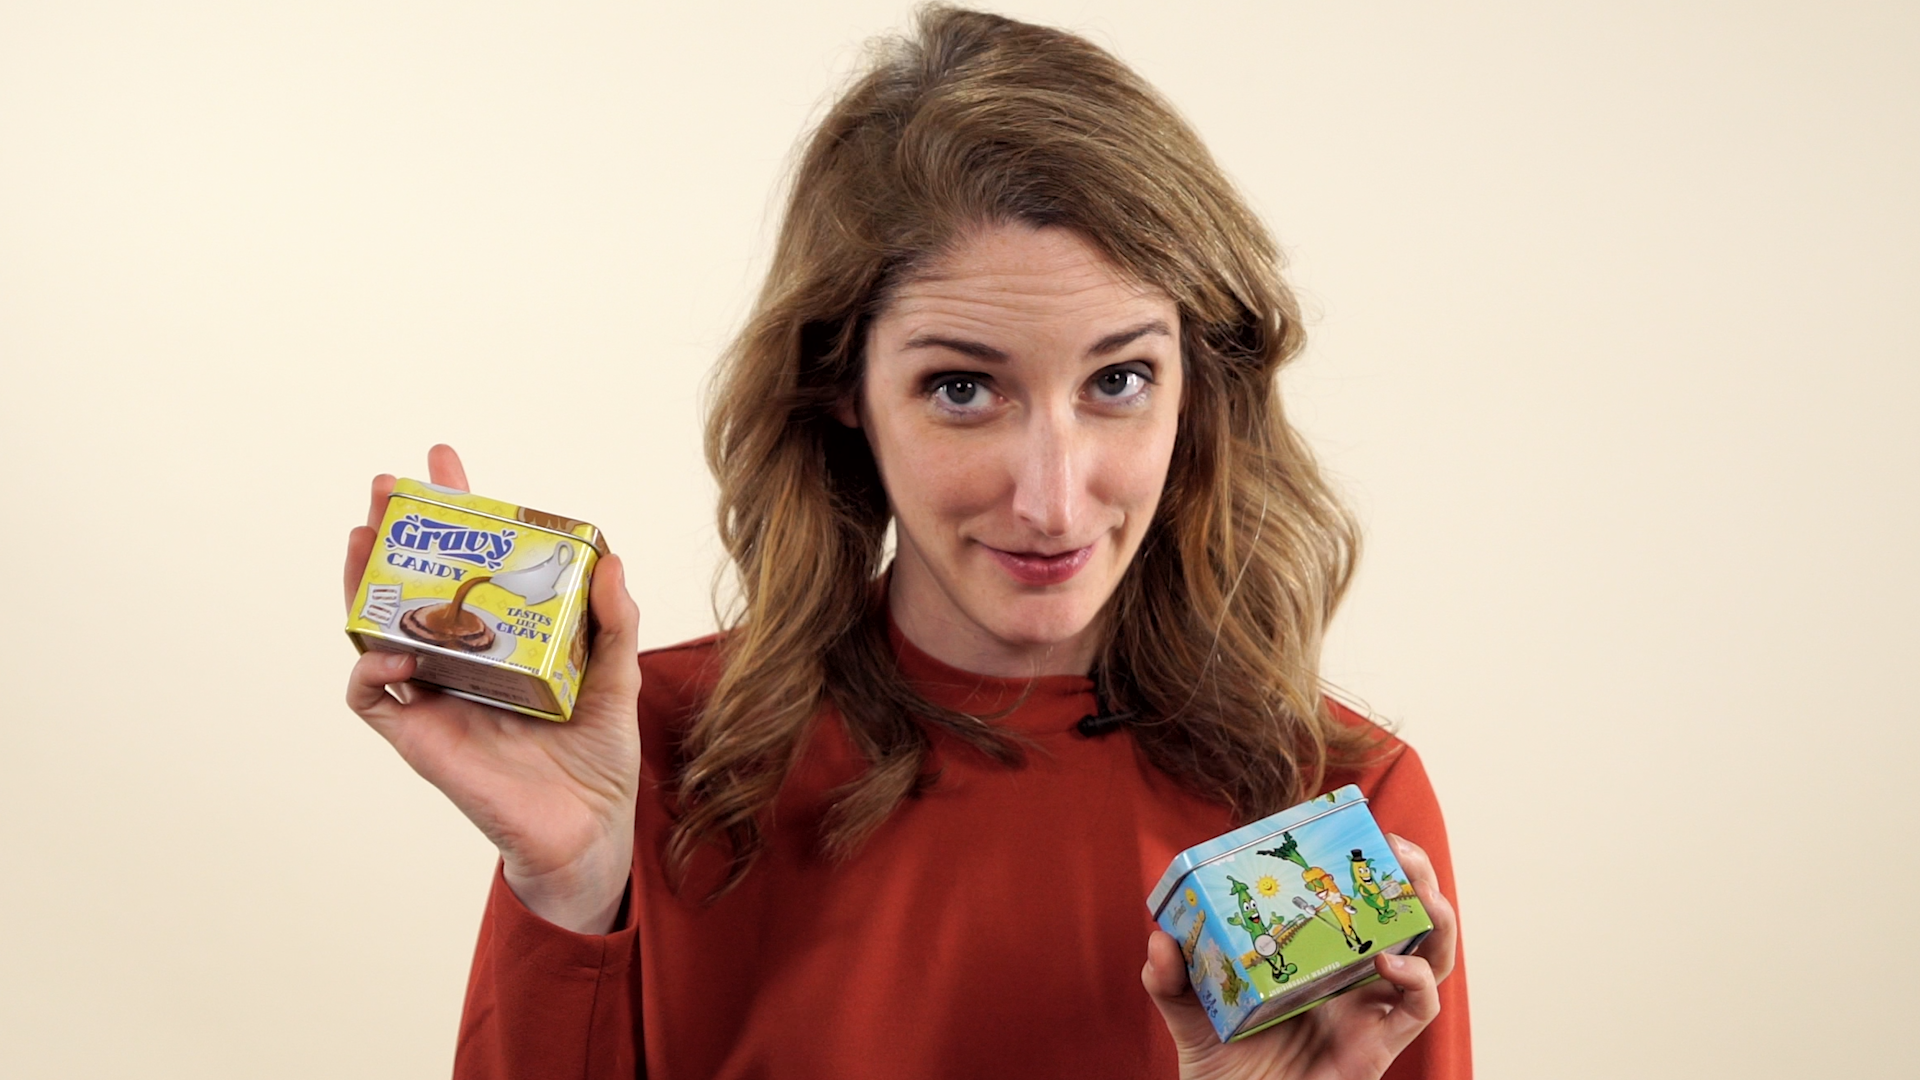 Two words will tell you everything about Thanksgiving novelty snacks: Gravy candy